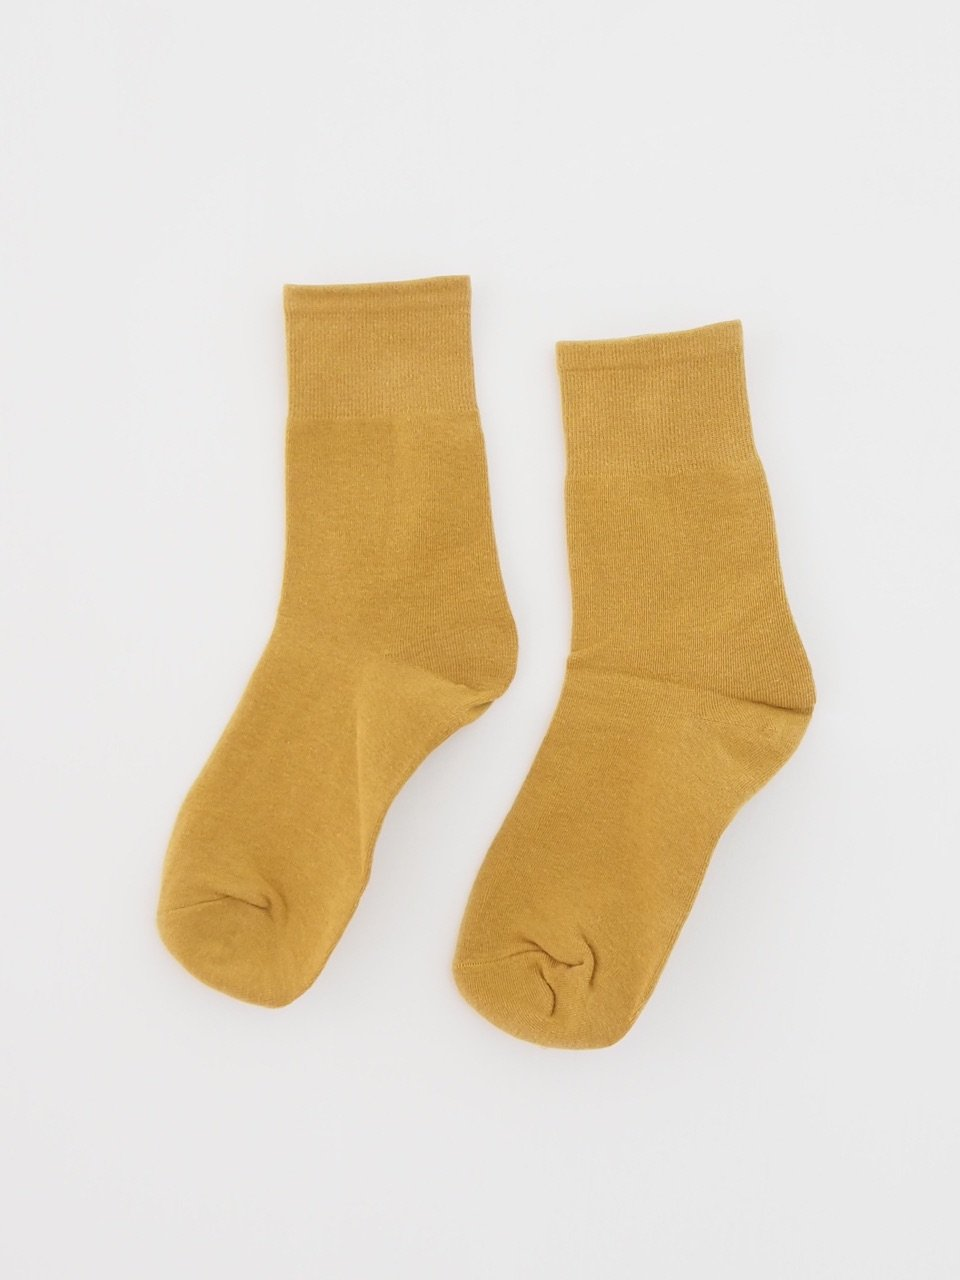 Daily Socks – Contemplation